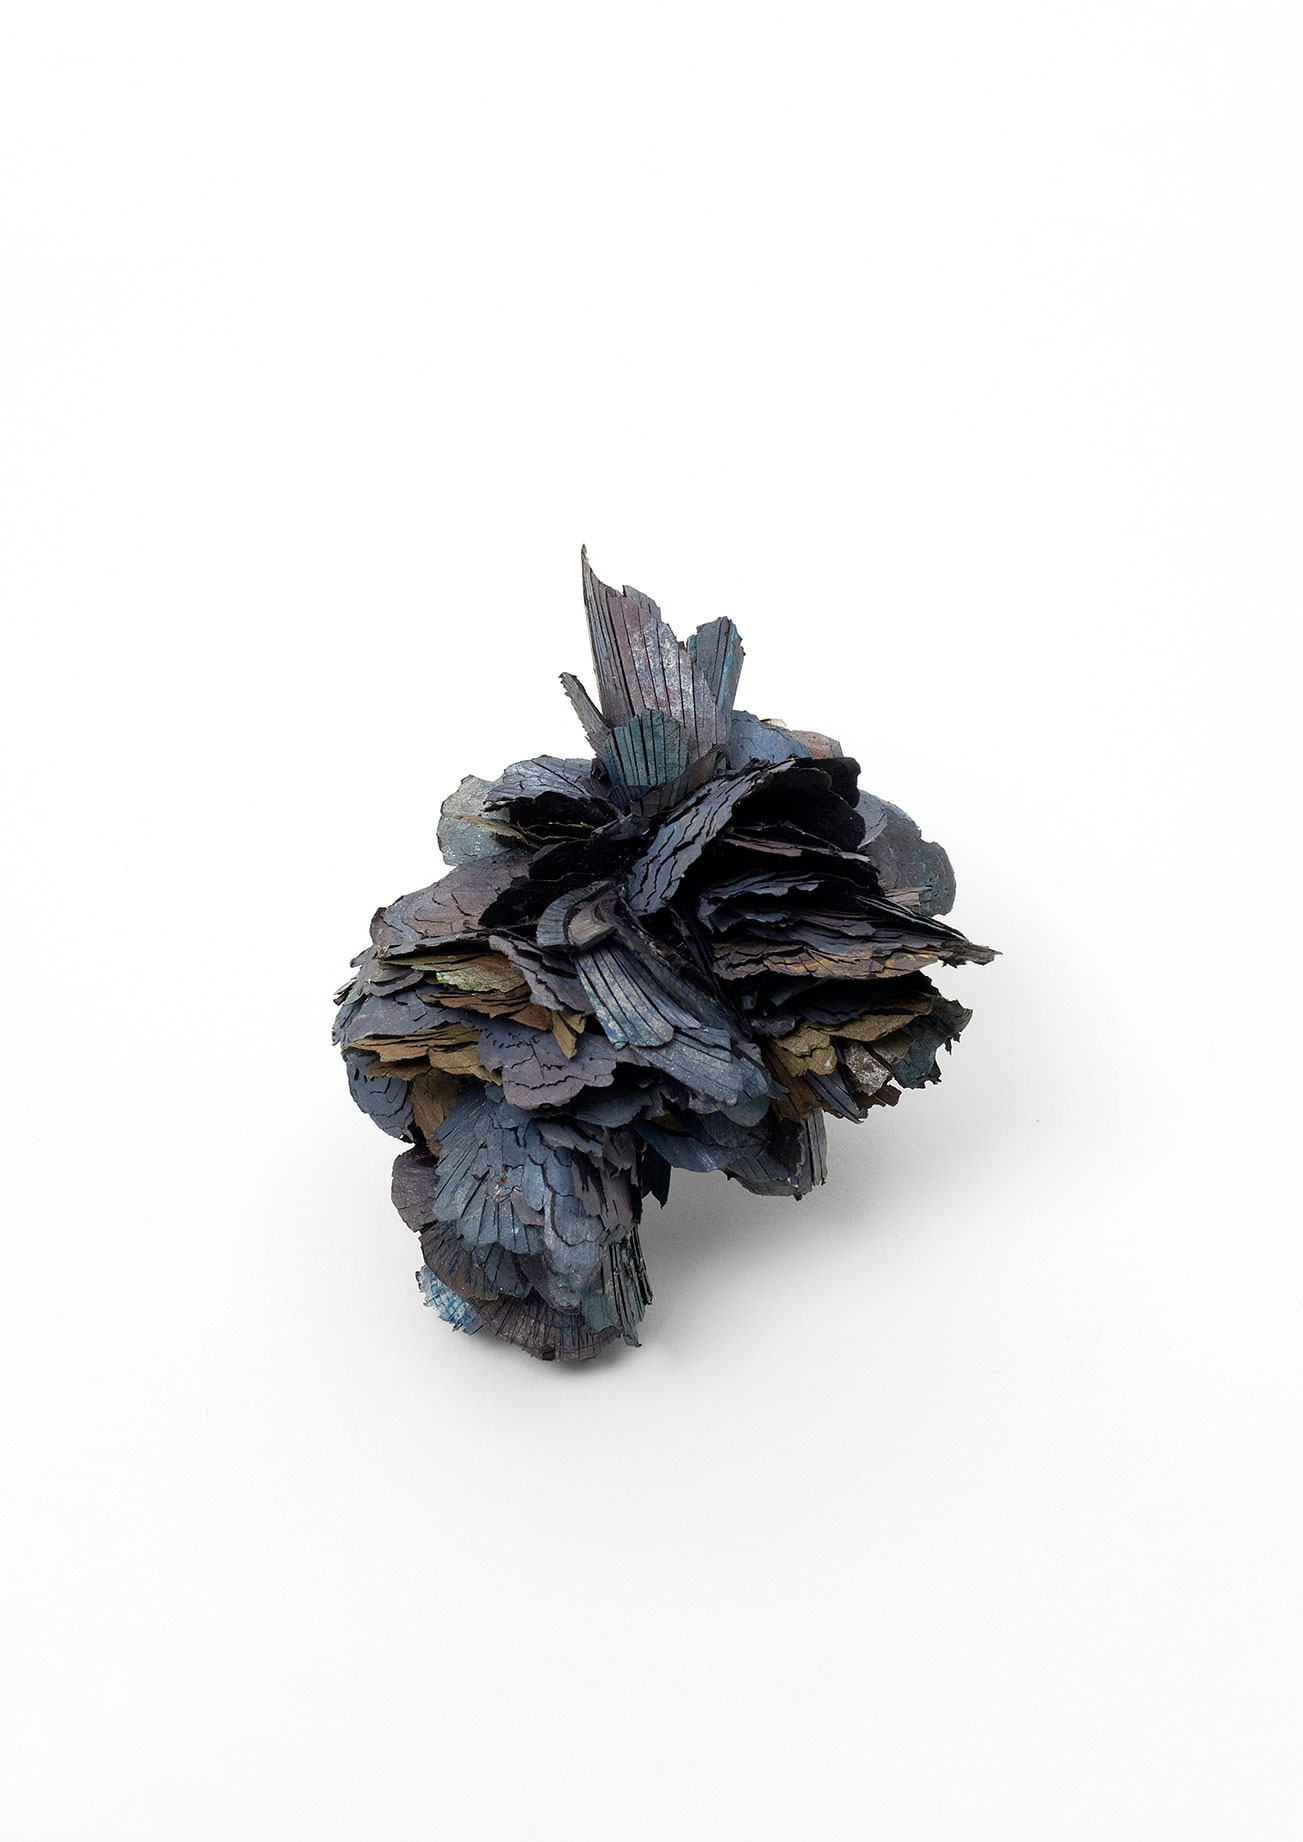 The Free Radicals (part 5)           |    Brooch          |      2012      |          Treated cellulose, paint, glue, silver, brass, stainless steel        |      85X65X60 mm